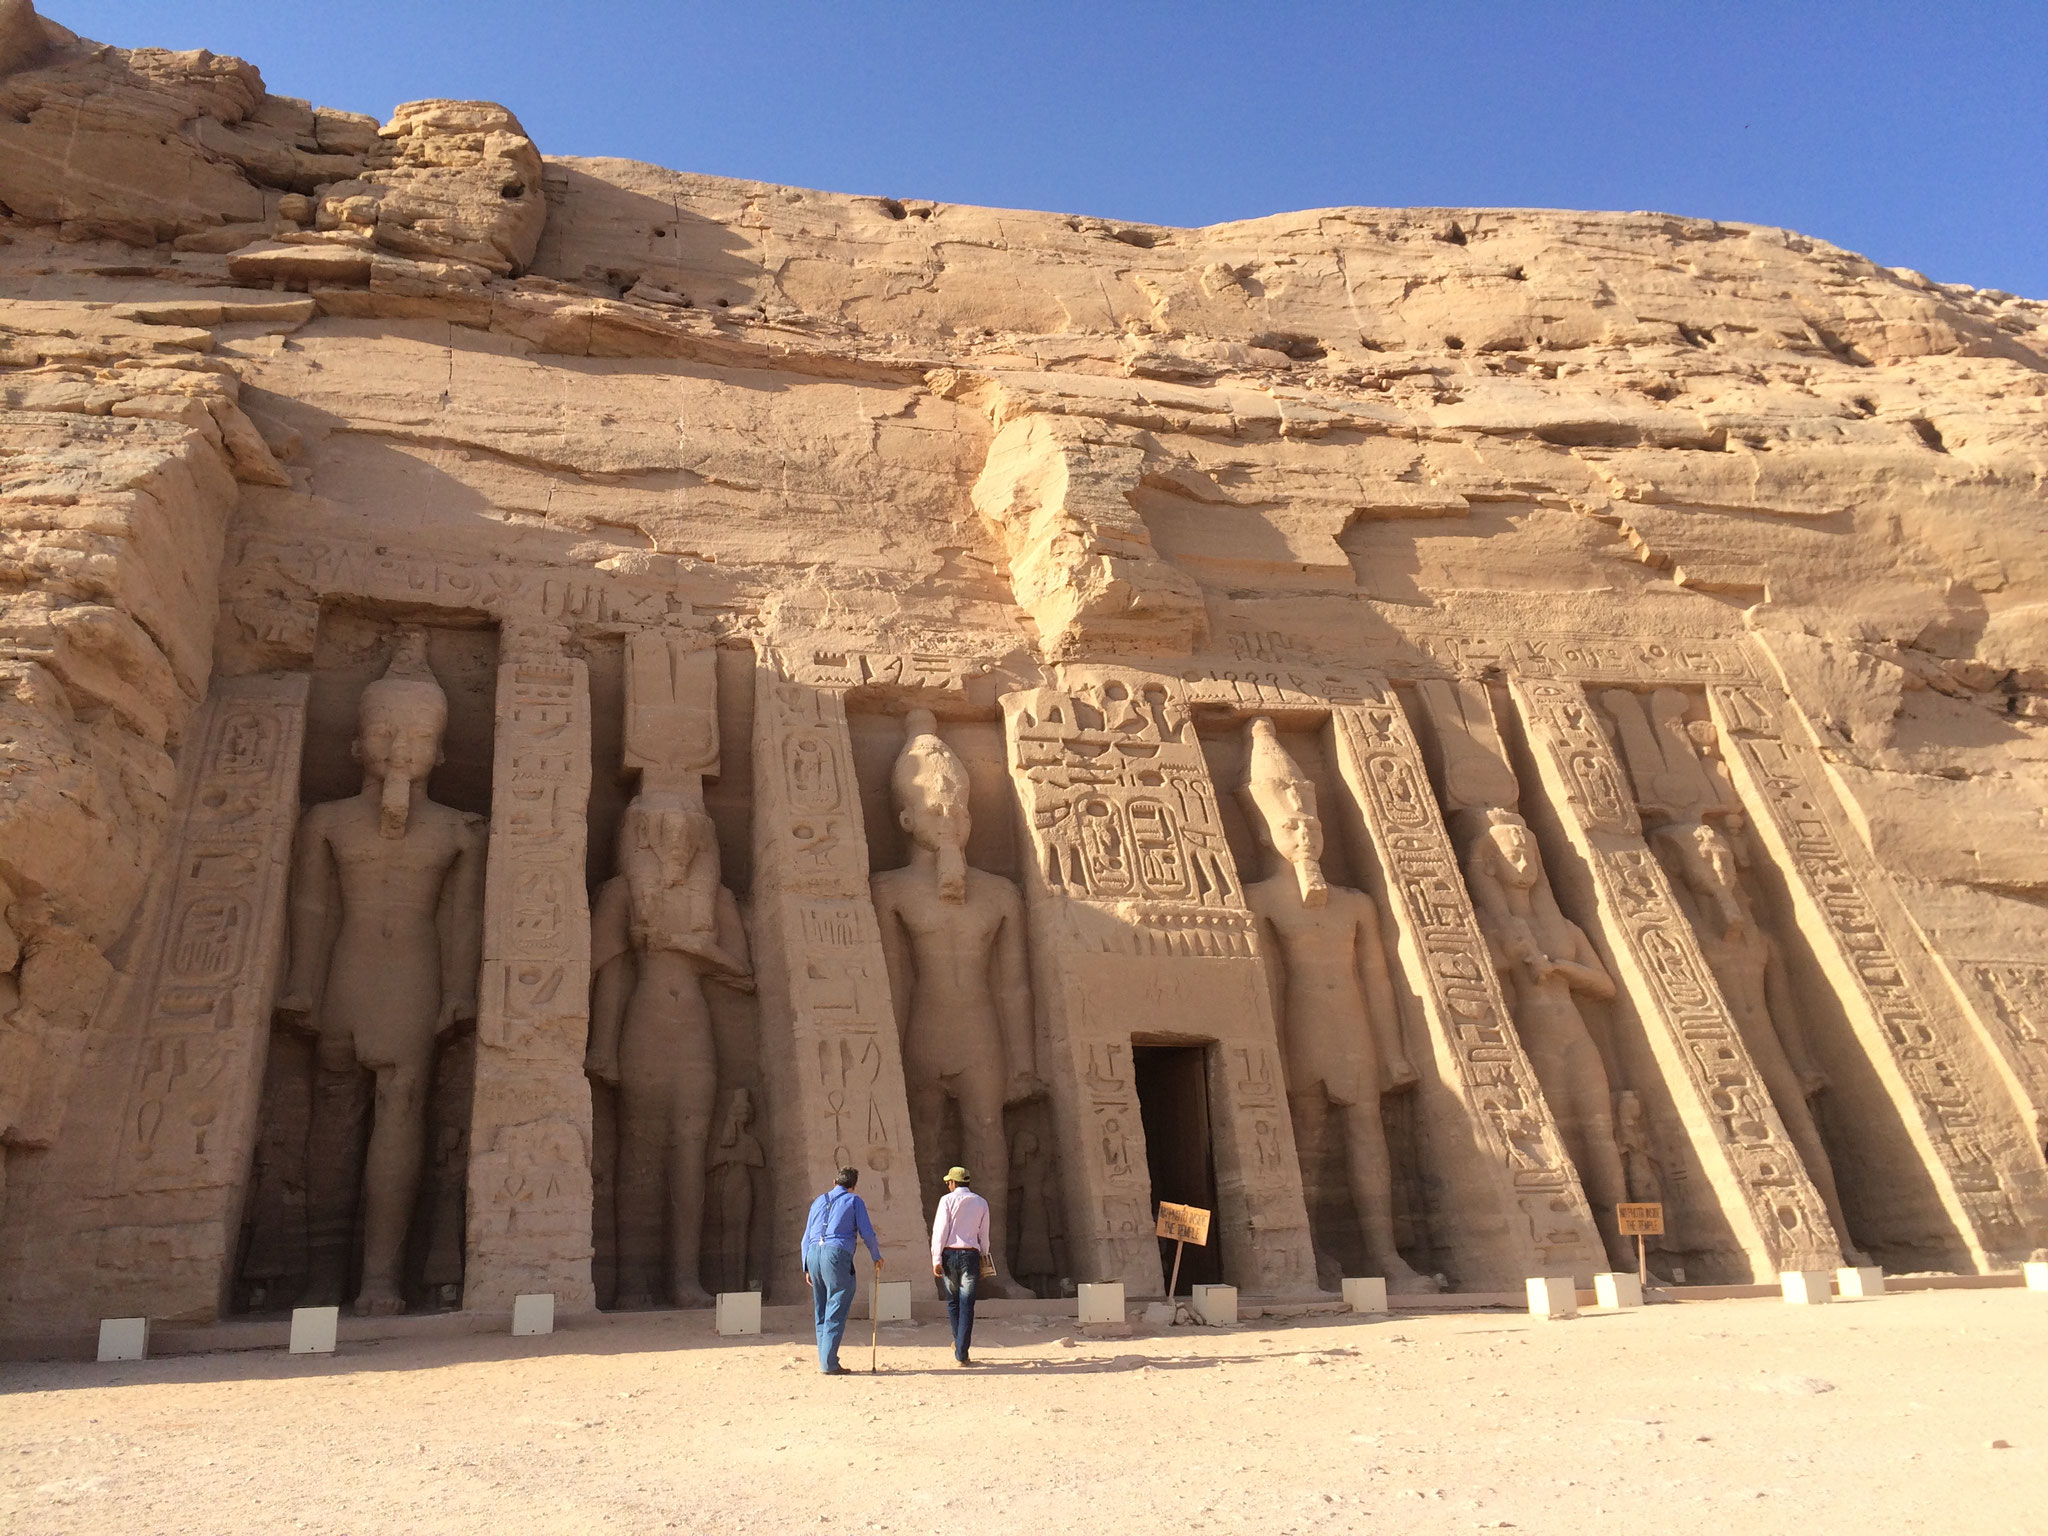 The small temple Abu Simbel